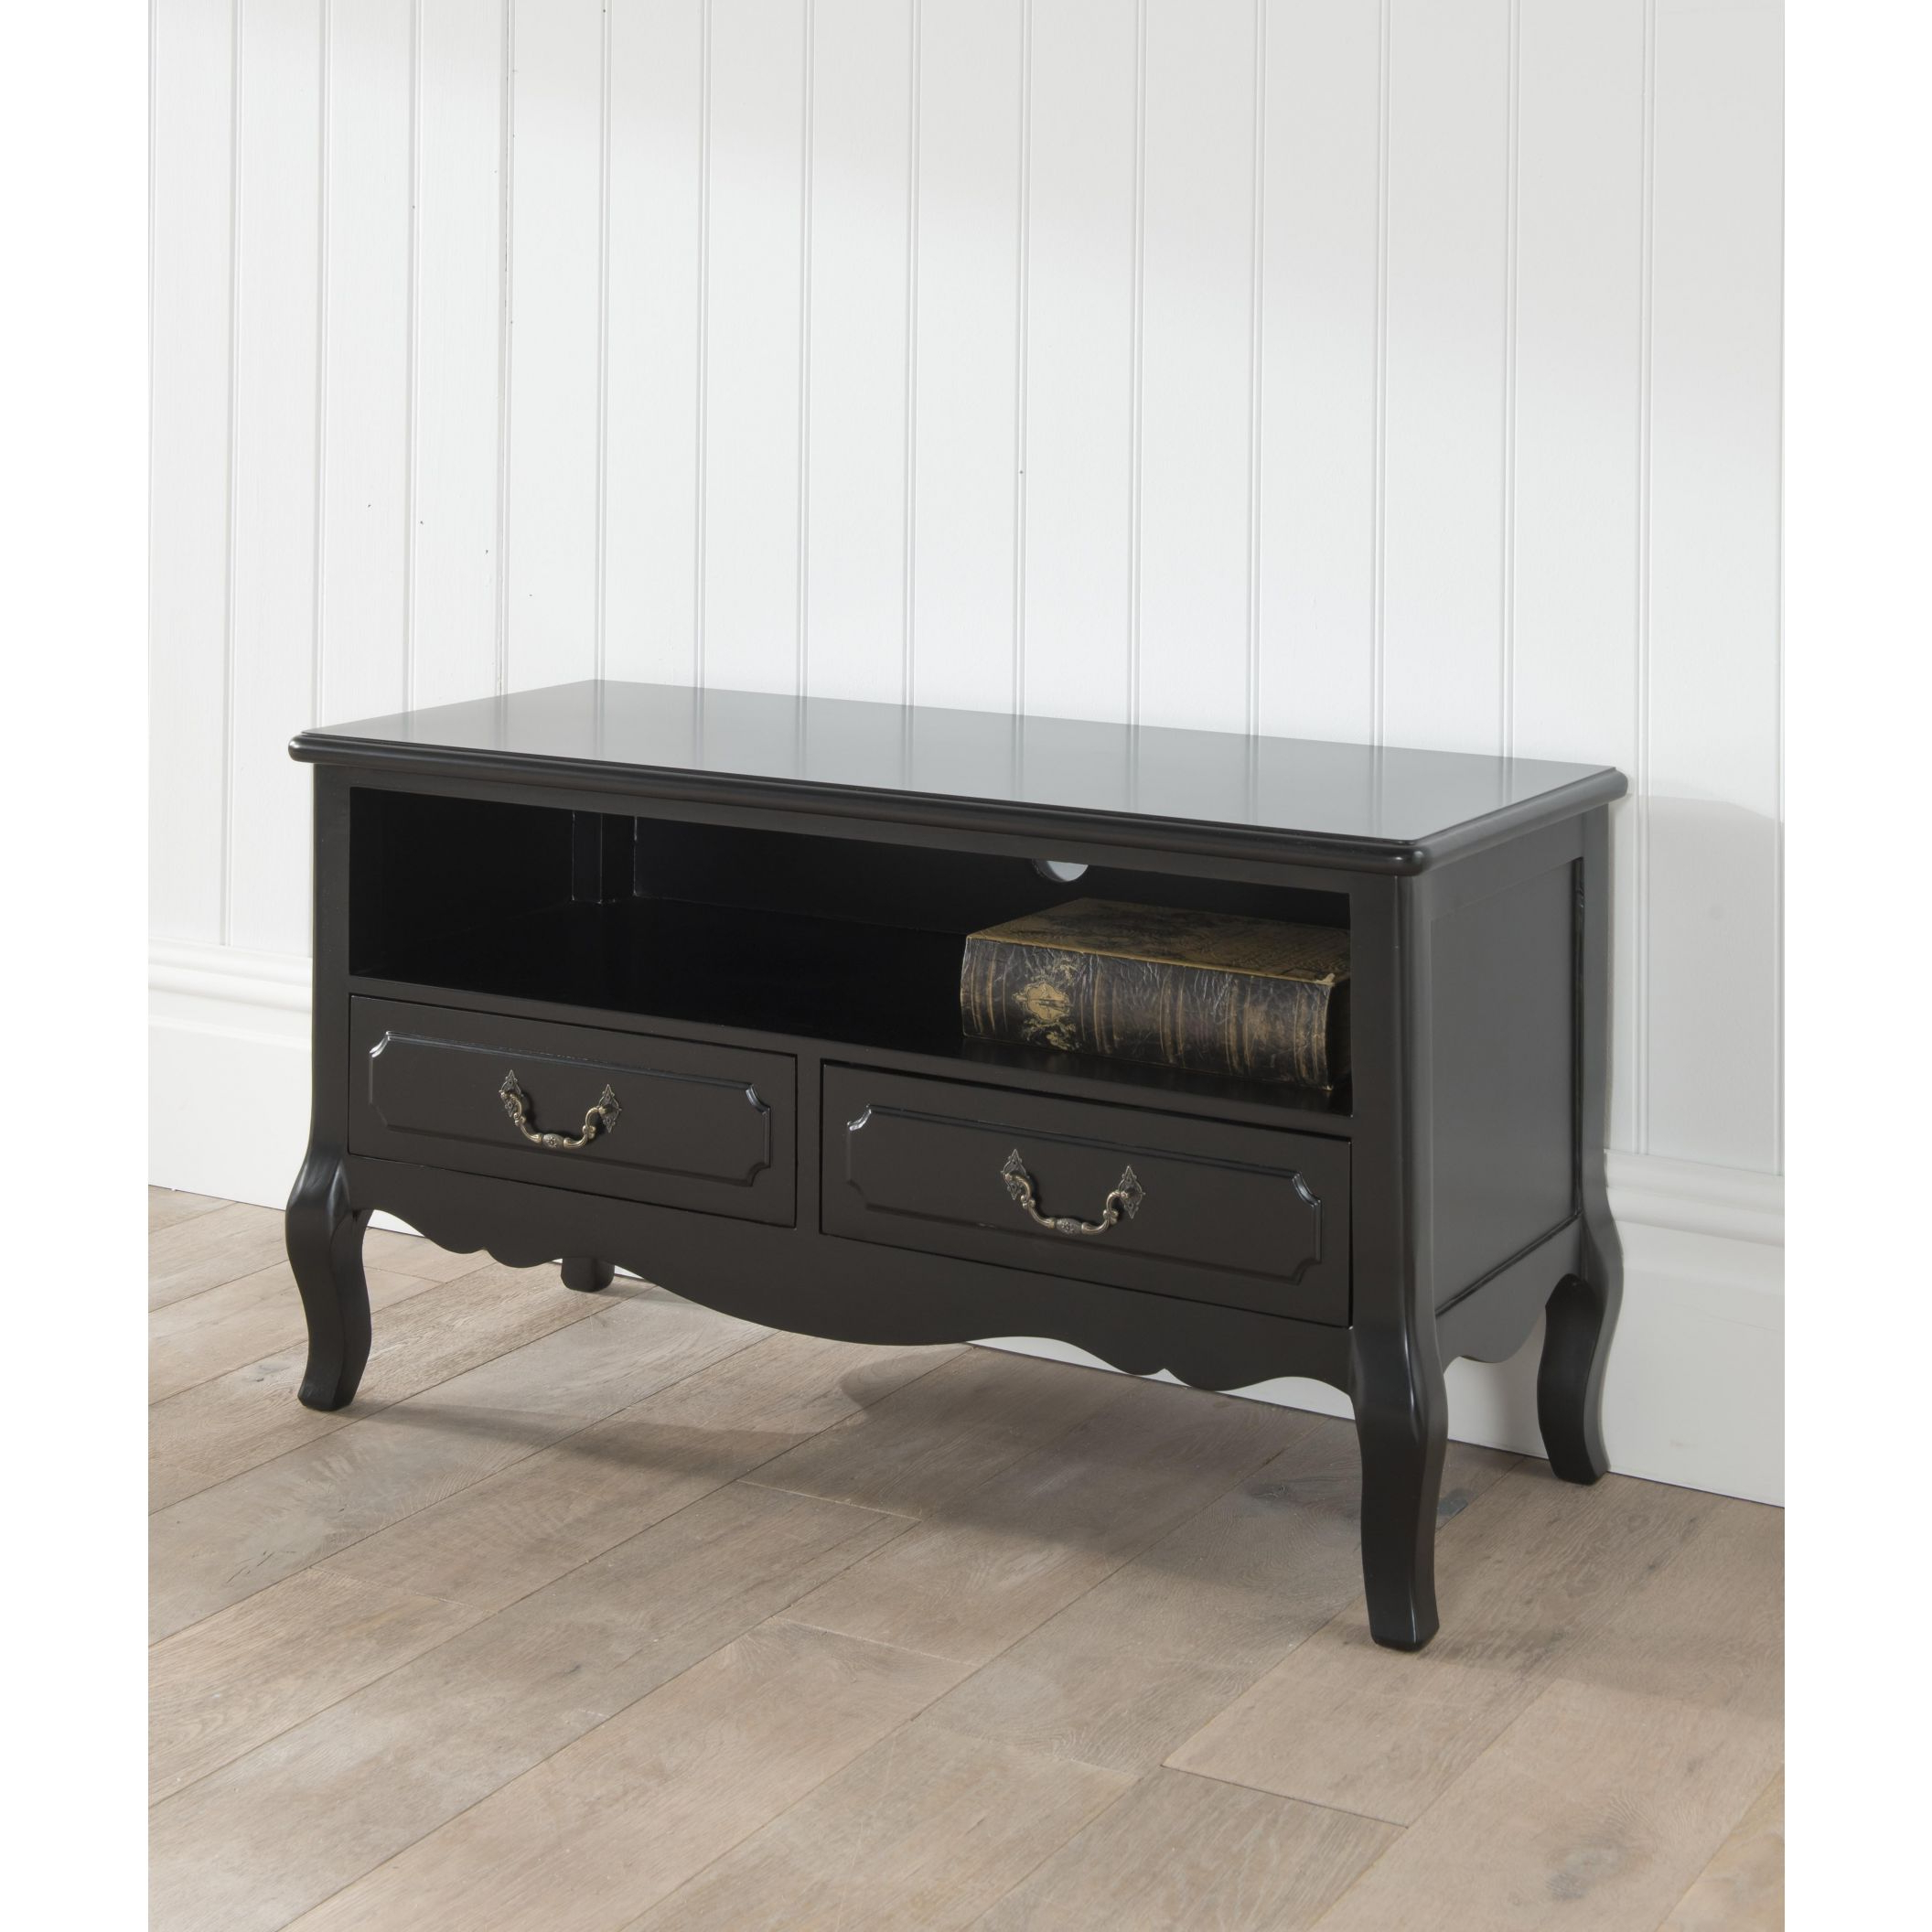 Most Current Black Tv Cabinets With Drawers Intended For Stunning New Collection Of French Furniture (View 13 of 20)